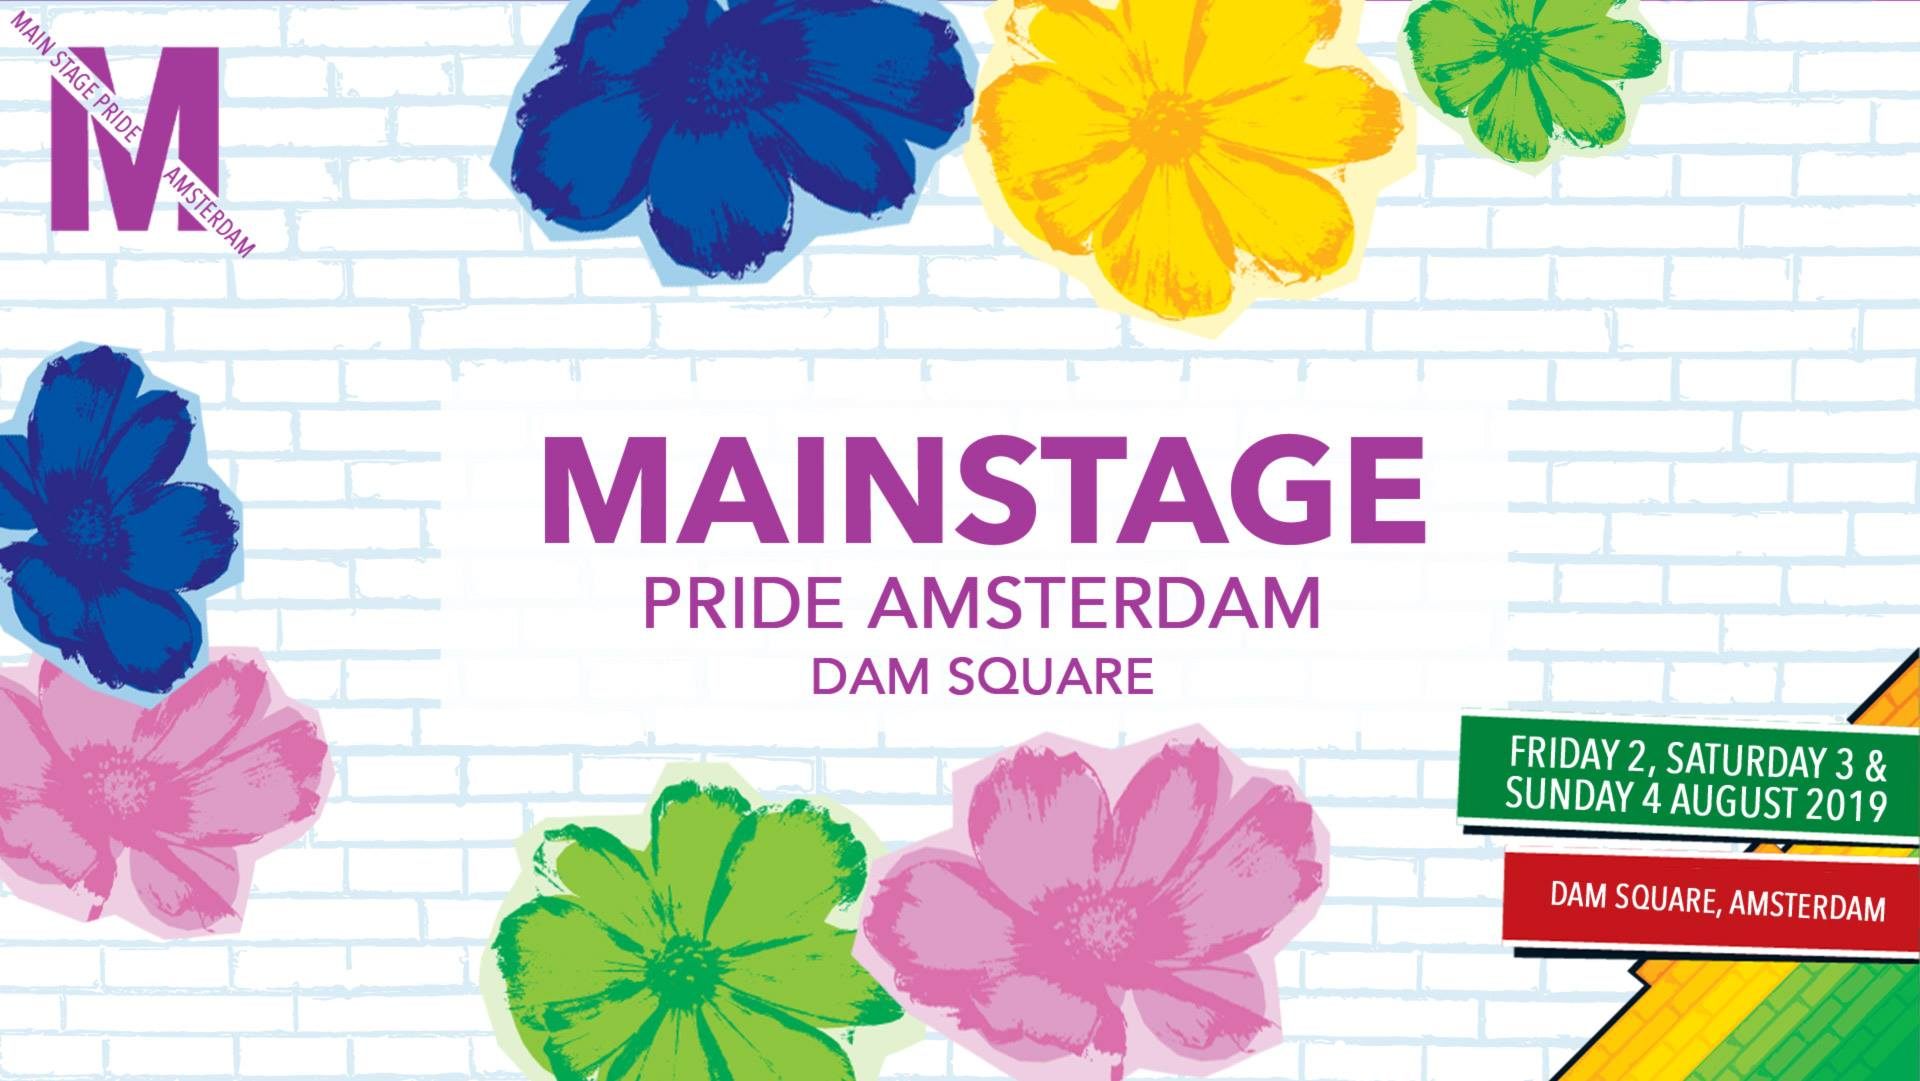 MainStage Pride Amsterdam Weekend 2019 ♡ Dam Square - Amsterdam Gay Pride 2019